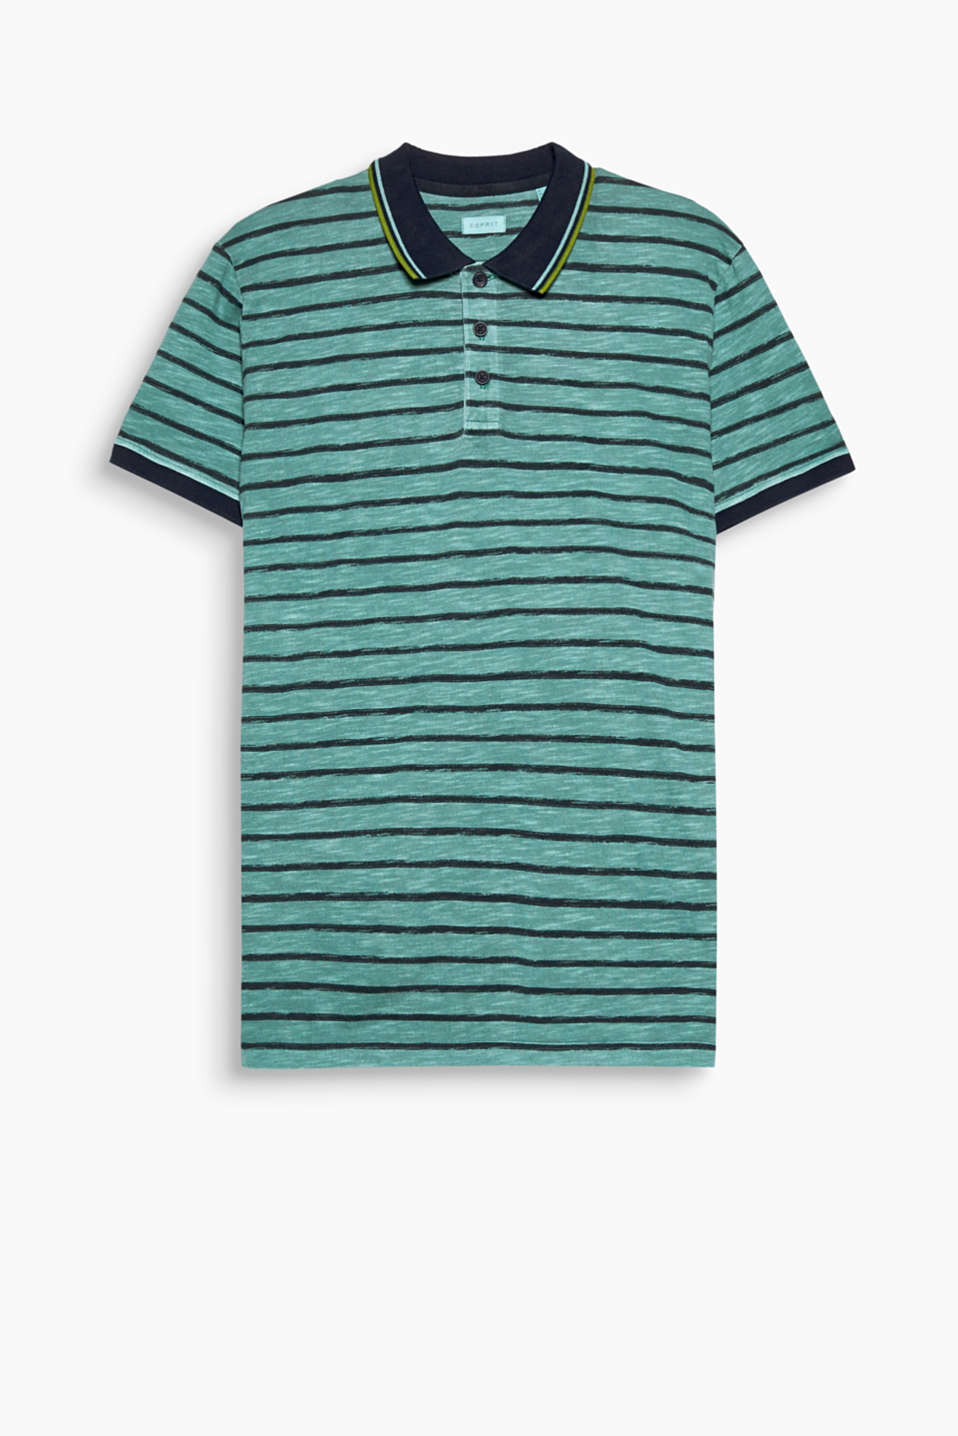 Light and breezy: the airy texture and uneven stripes give this polo shirt its easy style!